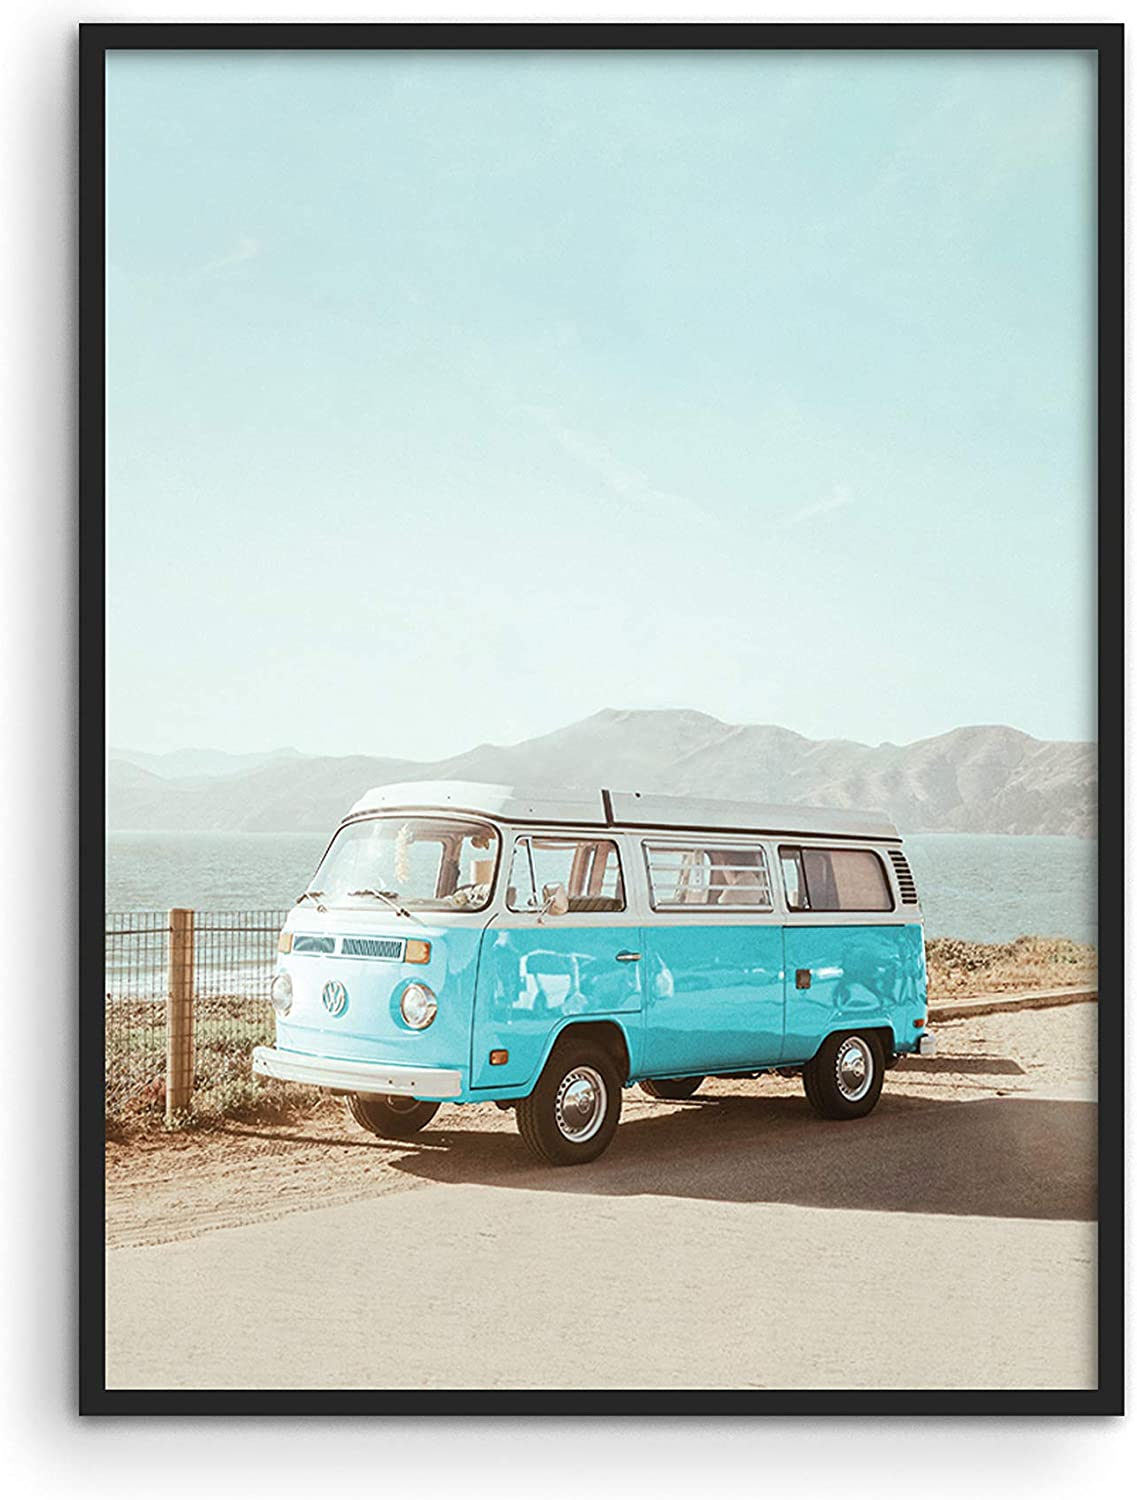 "Vintage Beach Posters Surfer Wall Art - by Haus and Hues | Surfer Van Decor and Vintage Beach Prints | Vintage Beach Wall Art California Beach Poster and Beach Wall Decor | 12"" x 16"" UNFRAMED (Blue Van)"